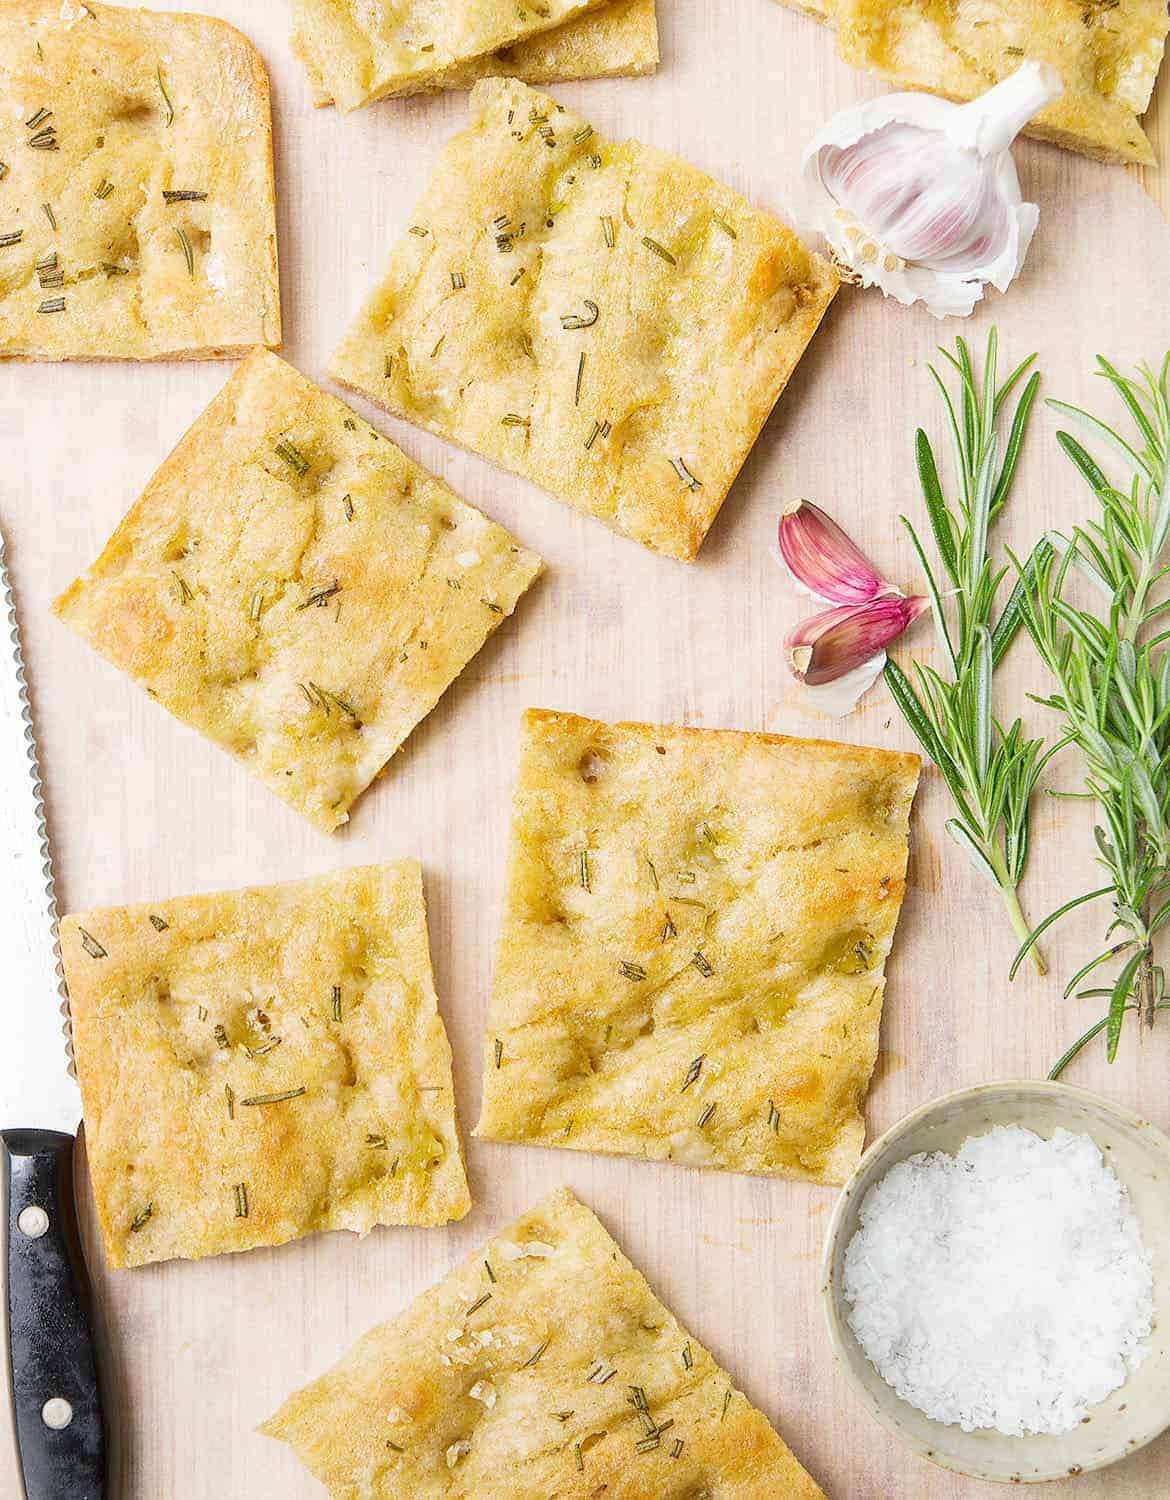 Slices of vegan focaccia with garlic cloves and rosemary on a chopping board - The Clever Meal